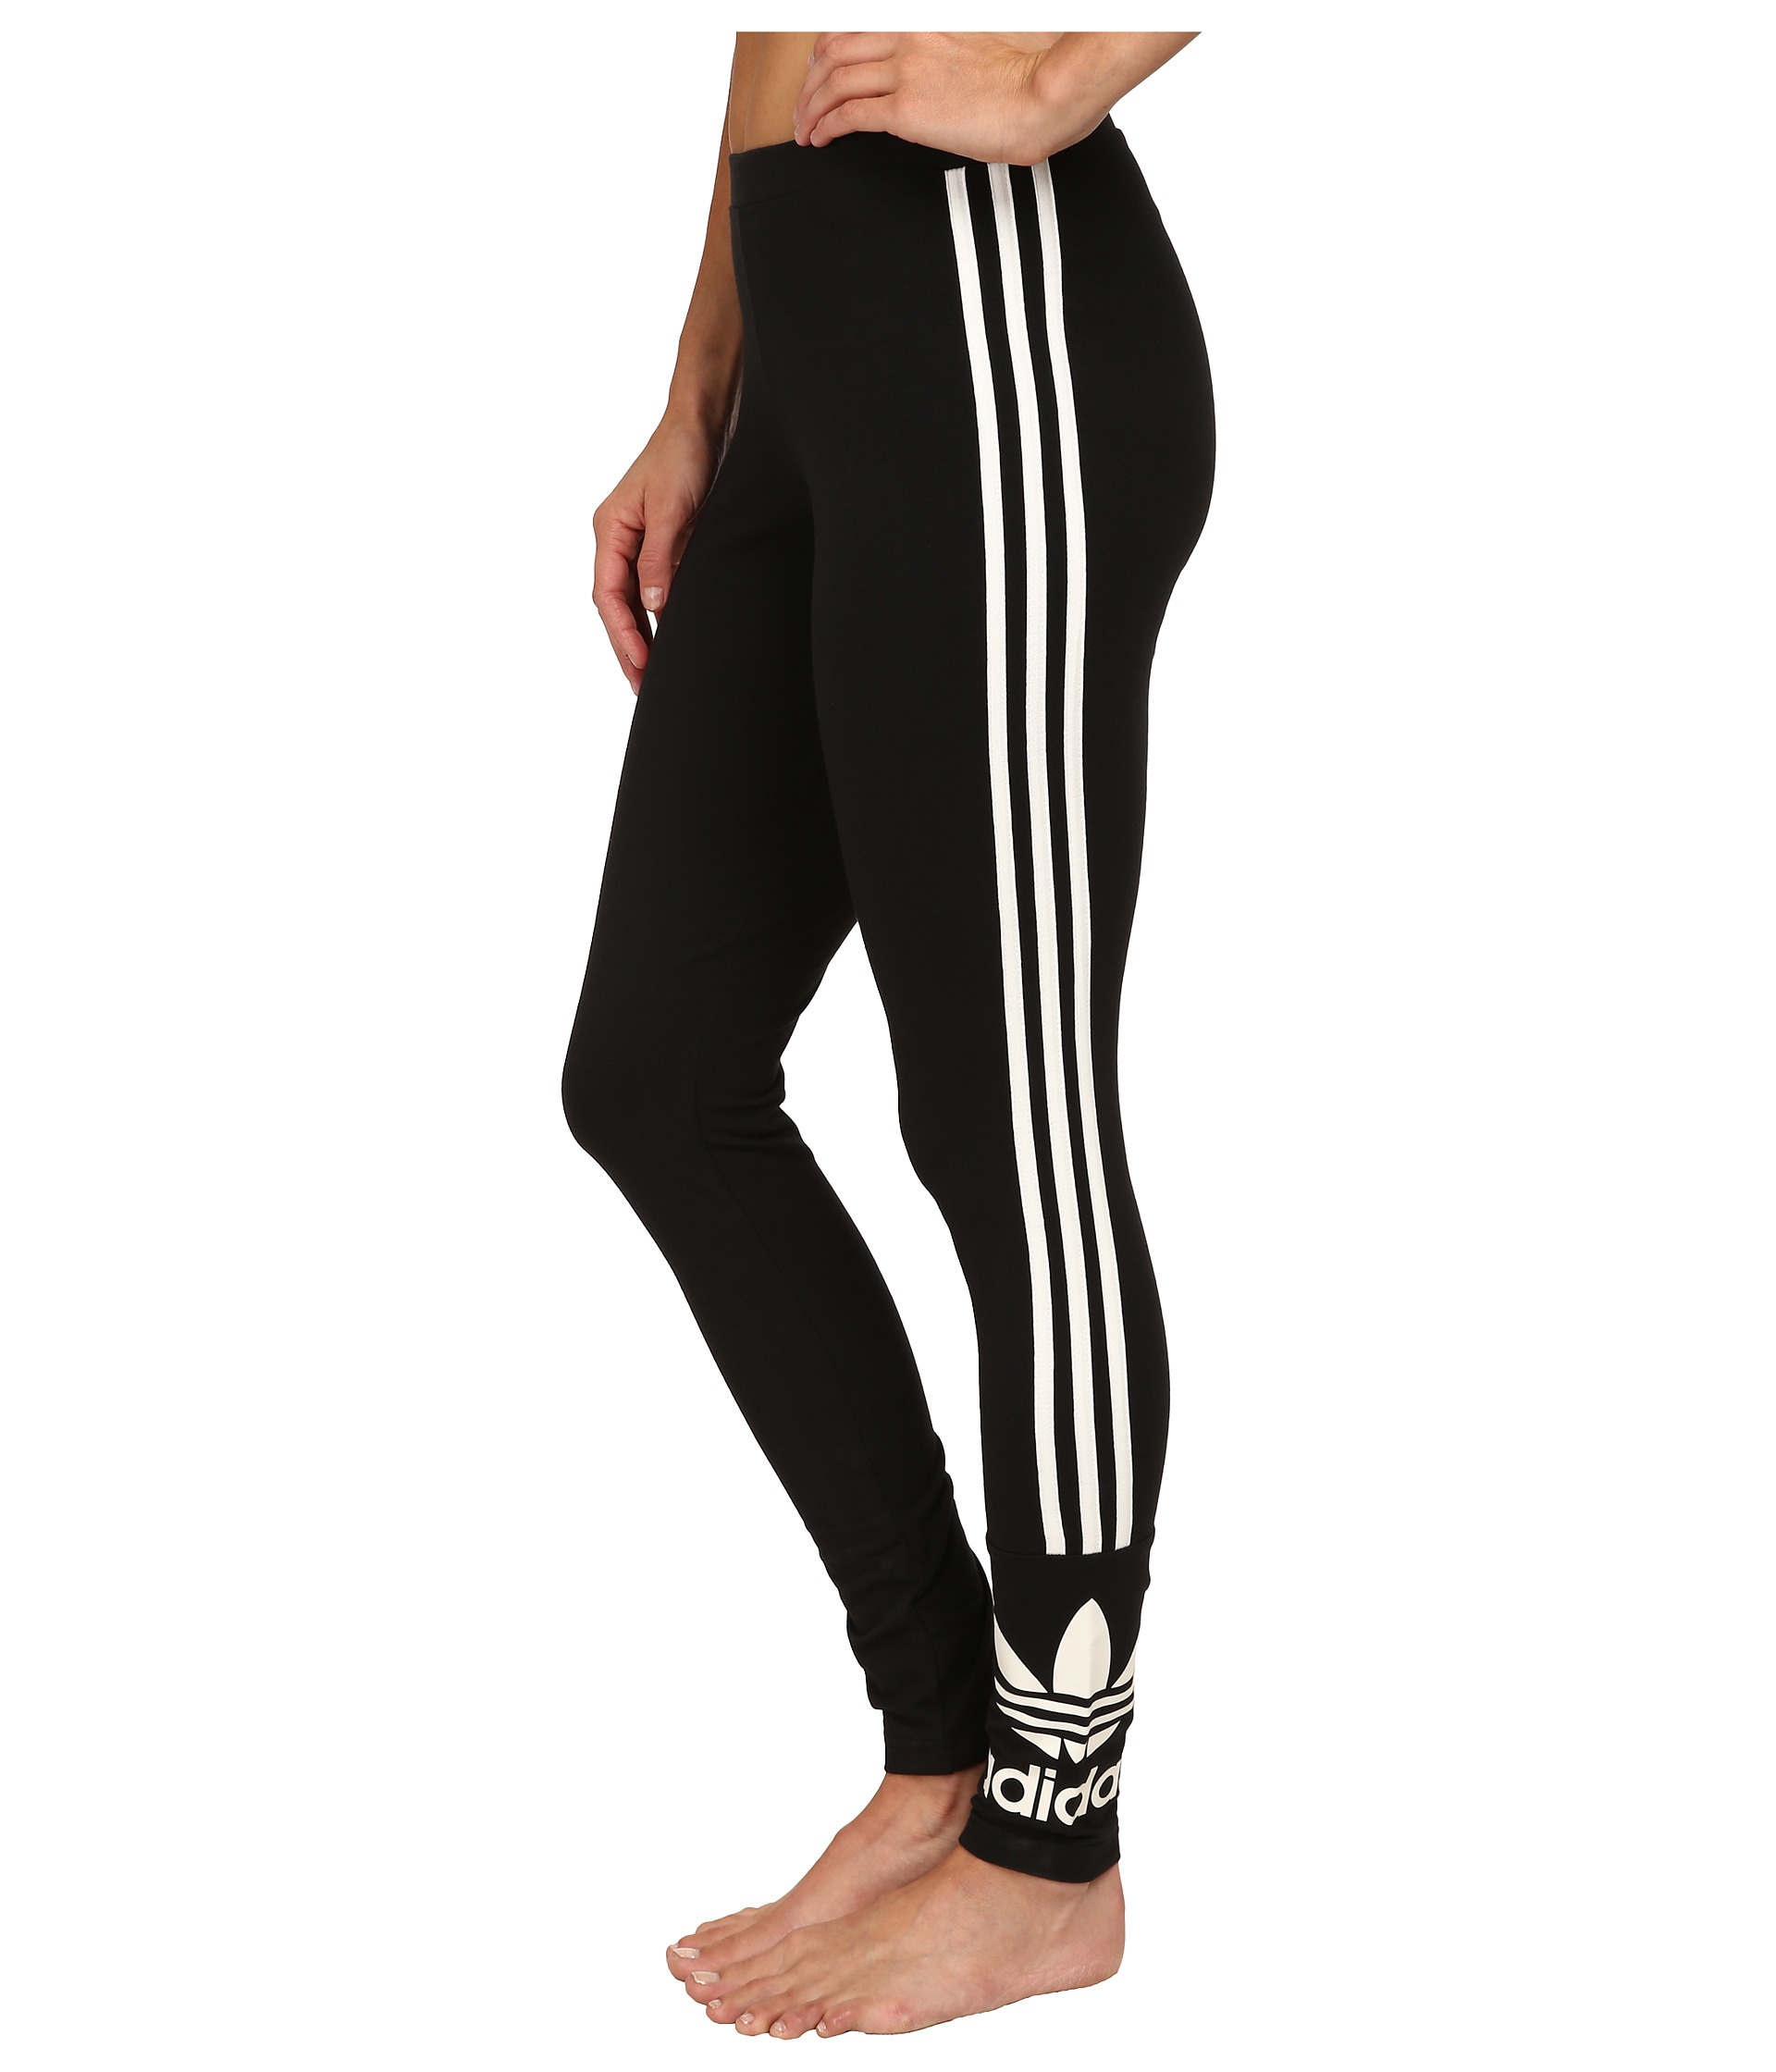 Lyst - adidas Originals 3-stripes Leggings in Black 0205cba5f35e